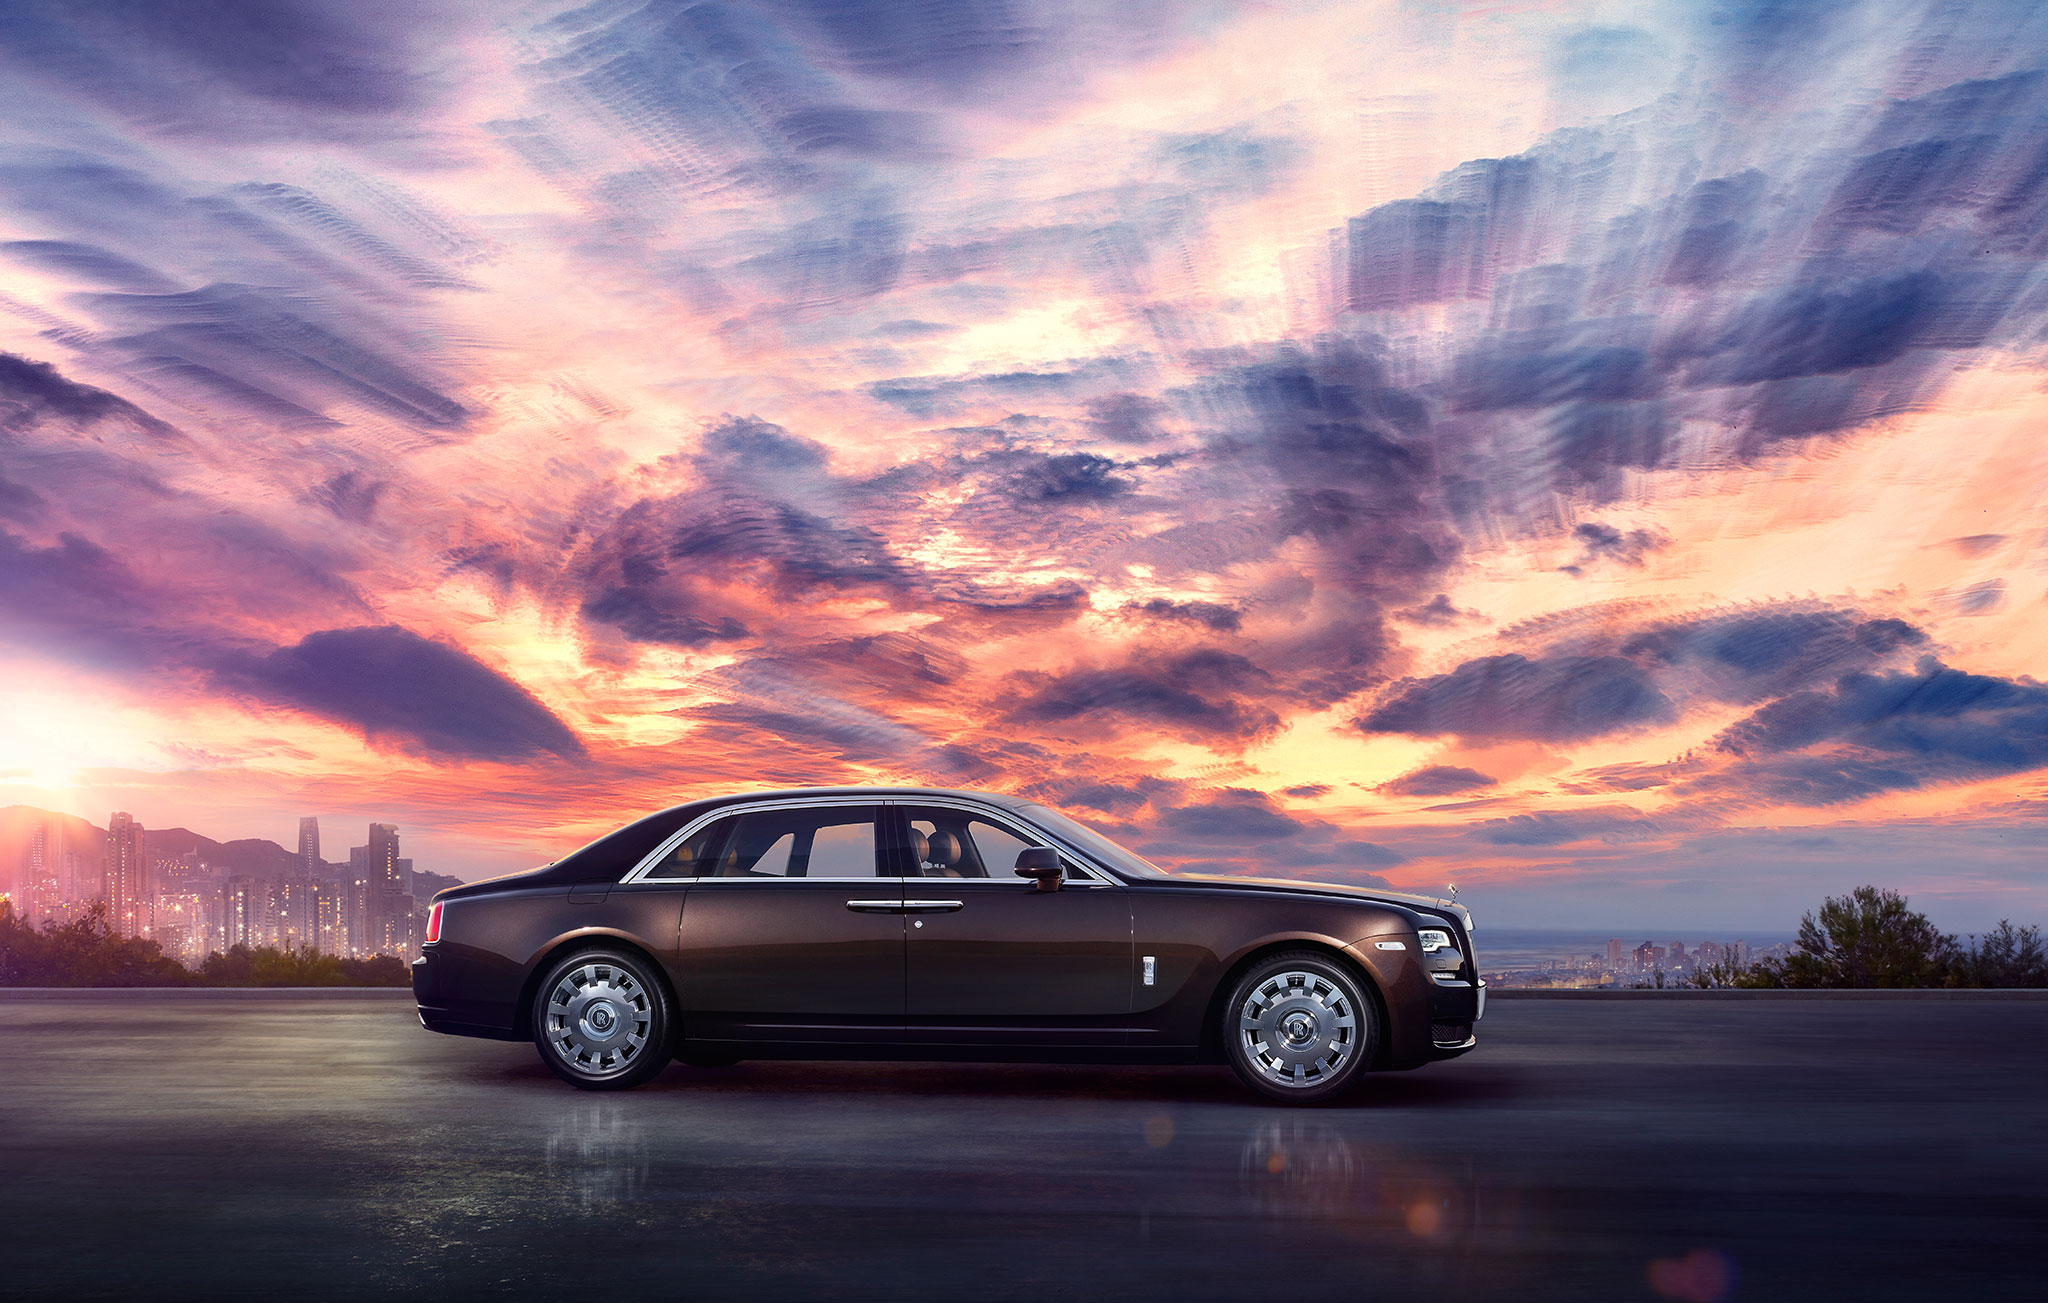 rolls royce ghost ii circlemedia cgi amp post production